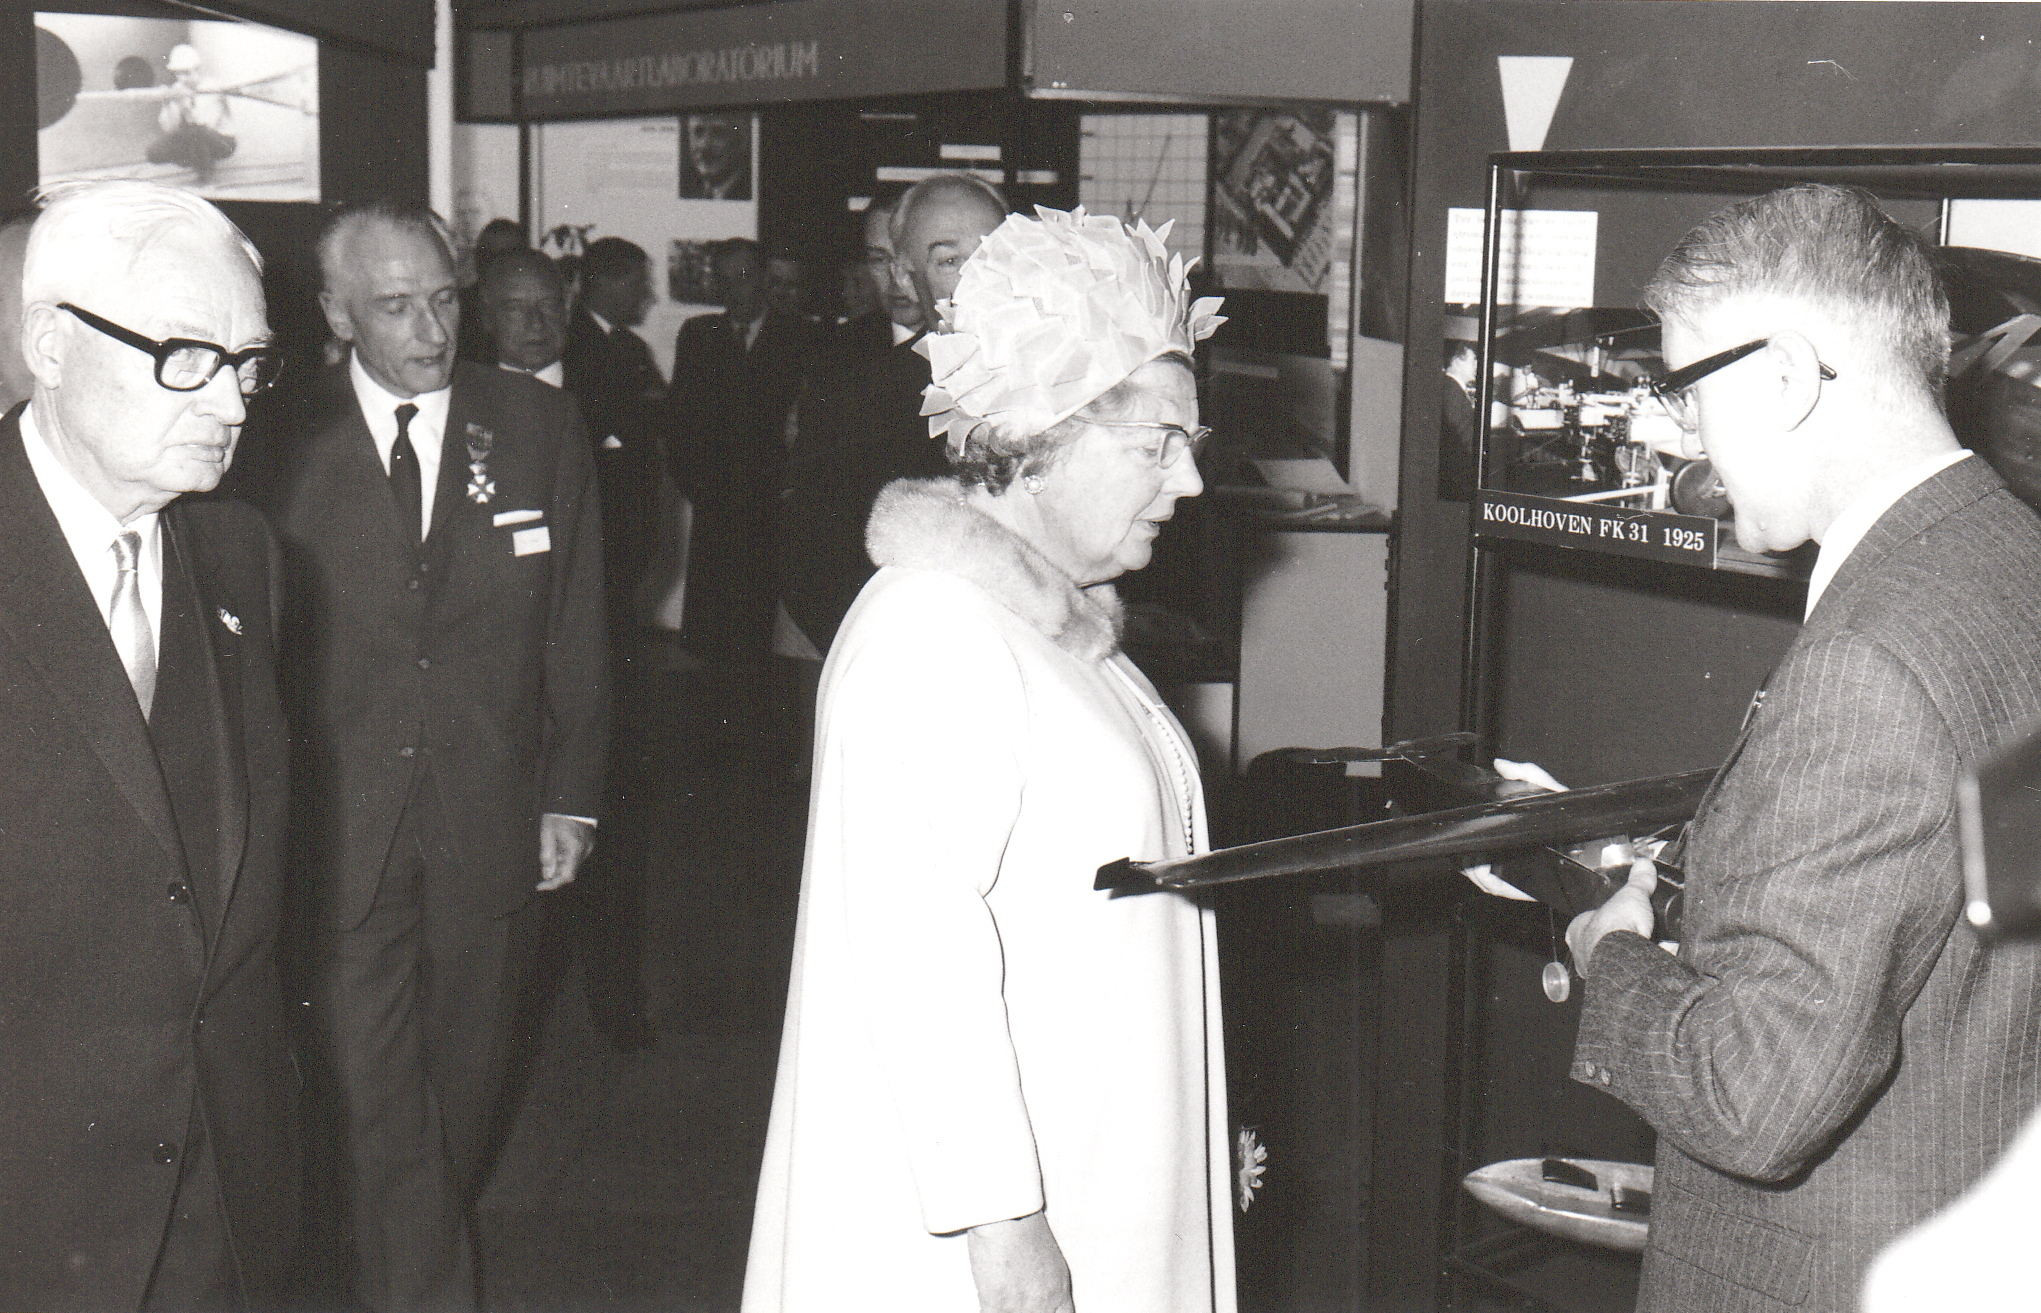 In April 1969 Queen Juliana visited the NLR during the celebrations of 50 years of aeronautical research. In this photo she's looking at a wind tunnel model of a Fokker F2 from 1920.